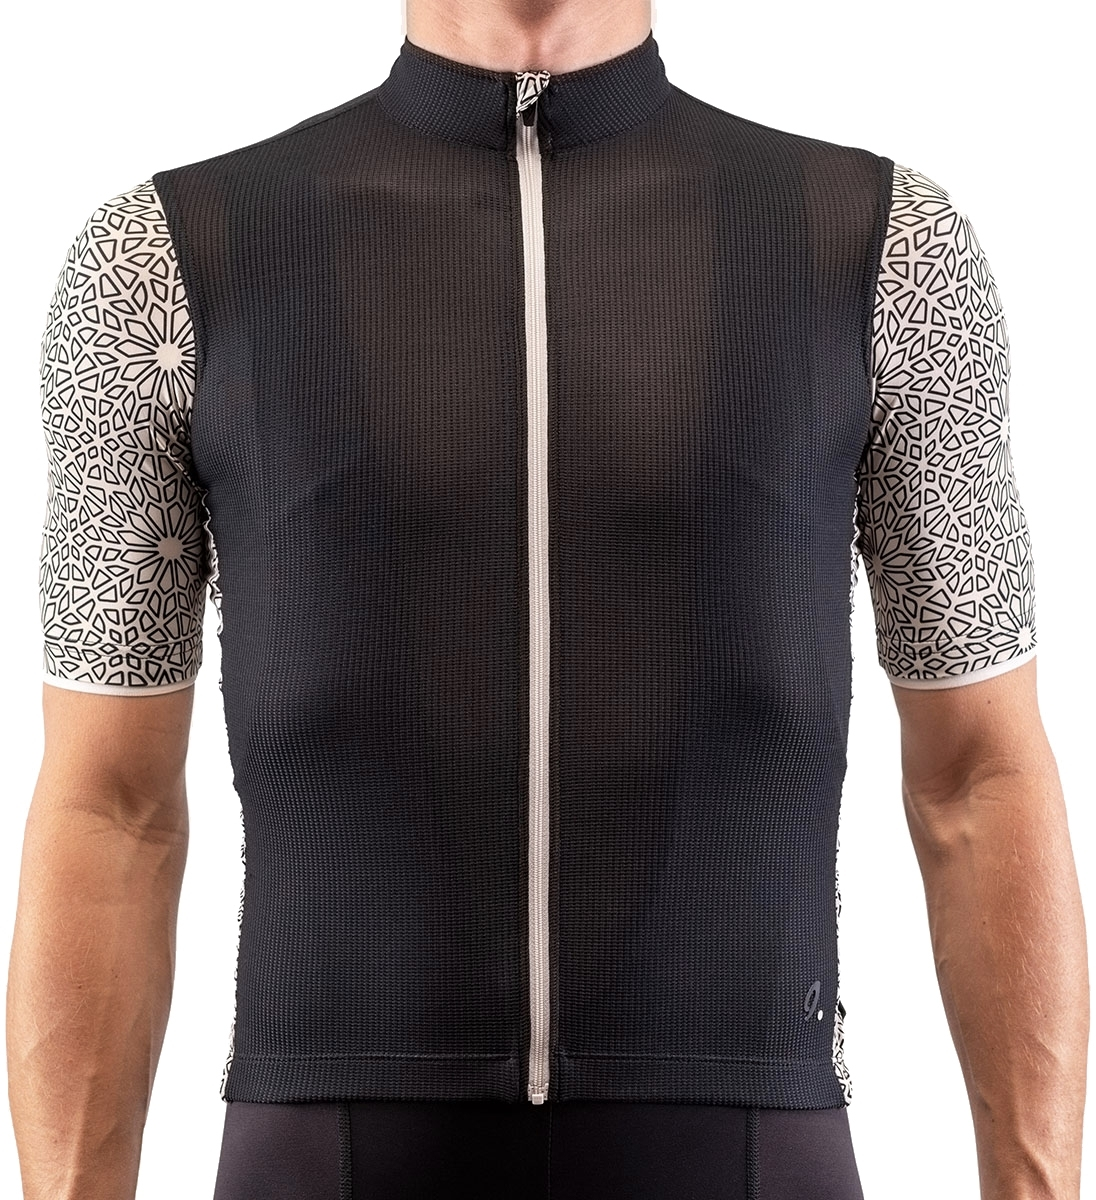 Isadore Climber's Jersey - atlas M